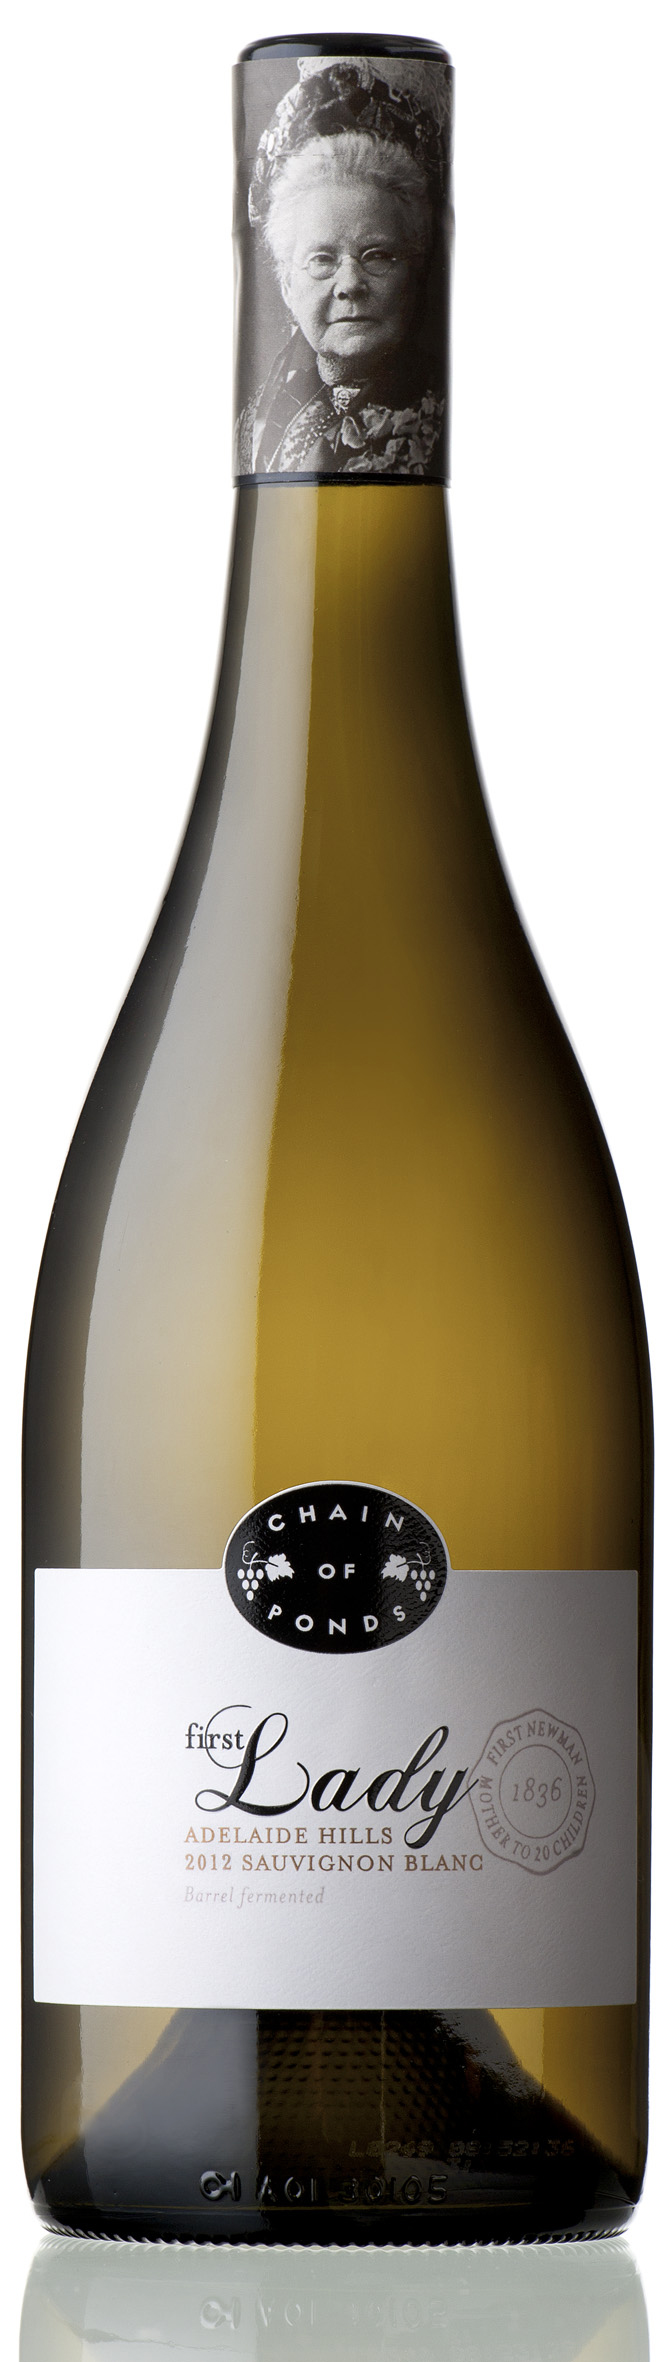 A Seafood Wine out of the Hills